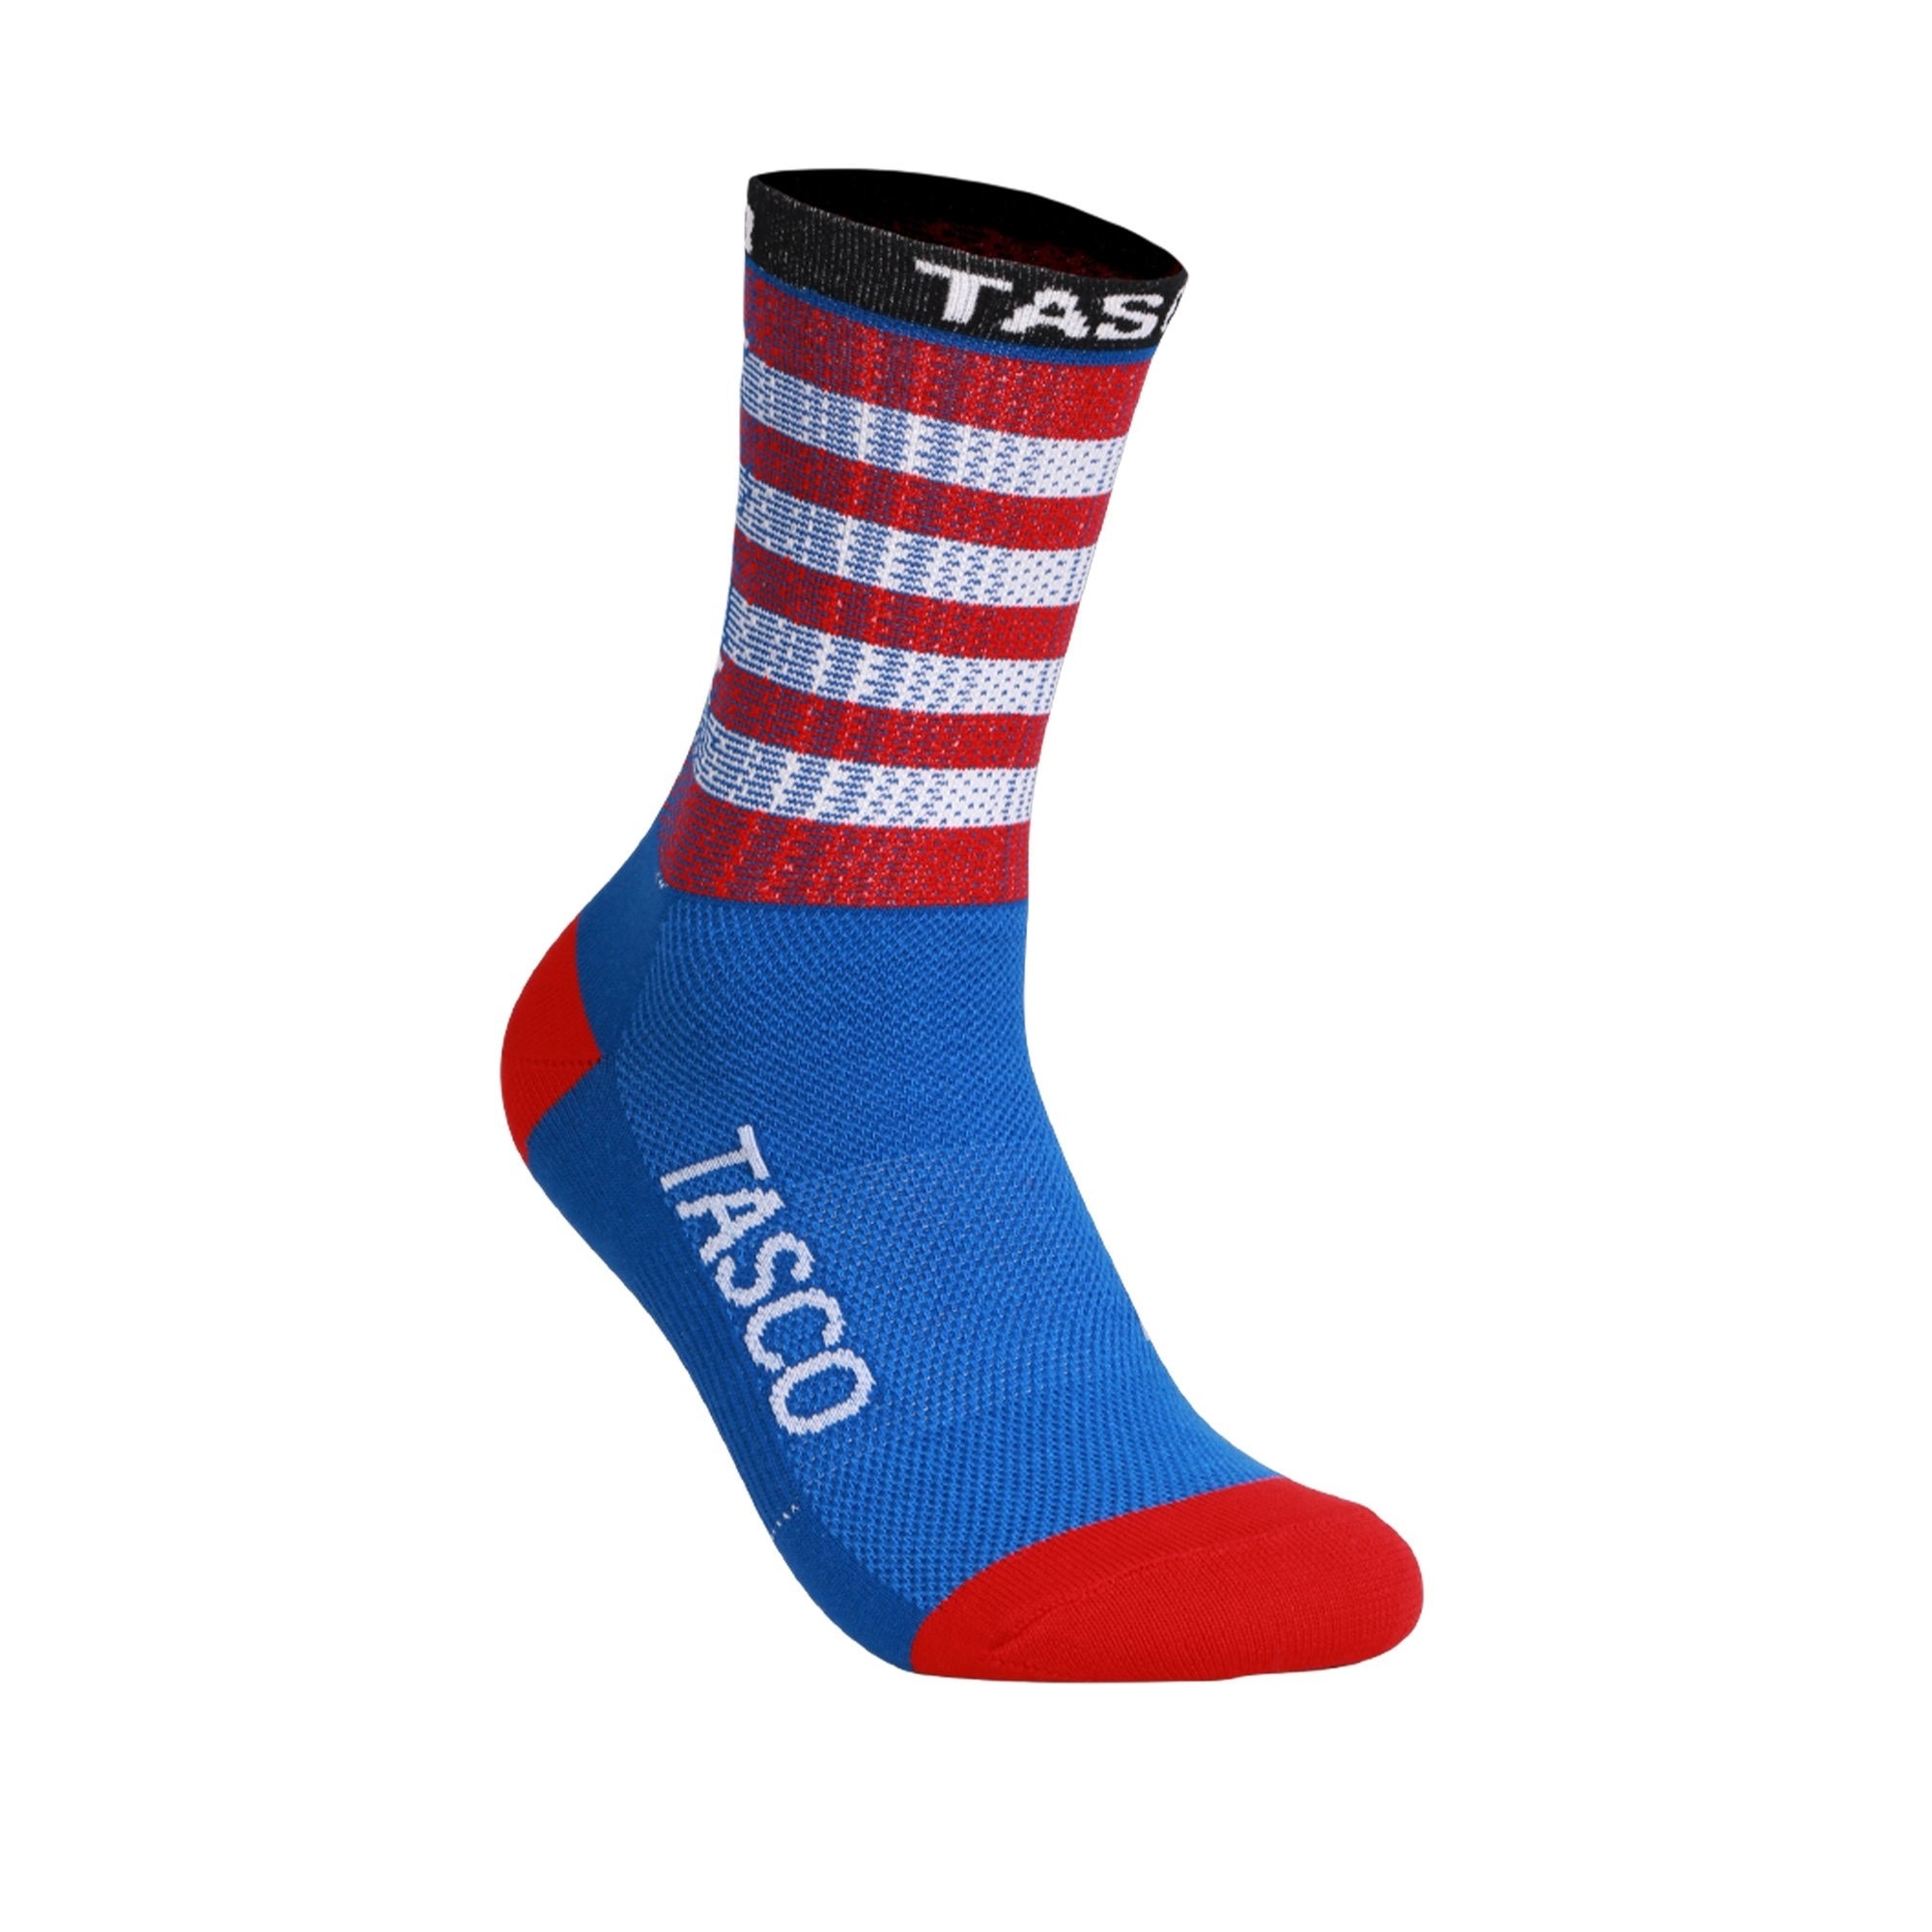 Double Digits Socks (Indivisible Flag)-1